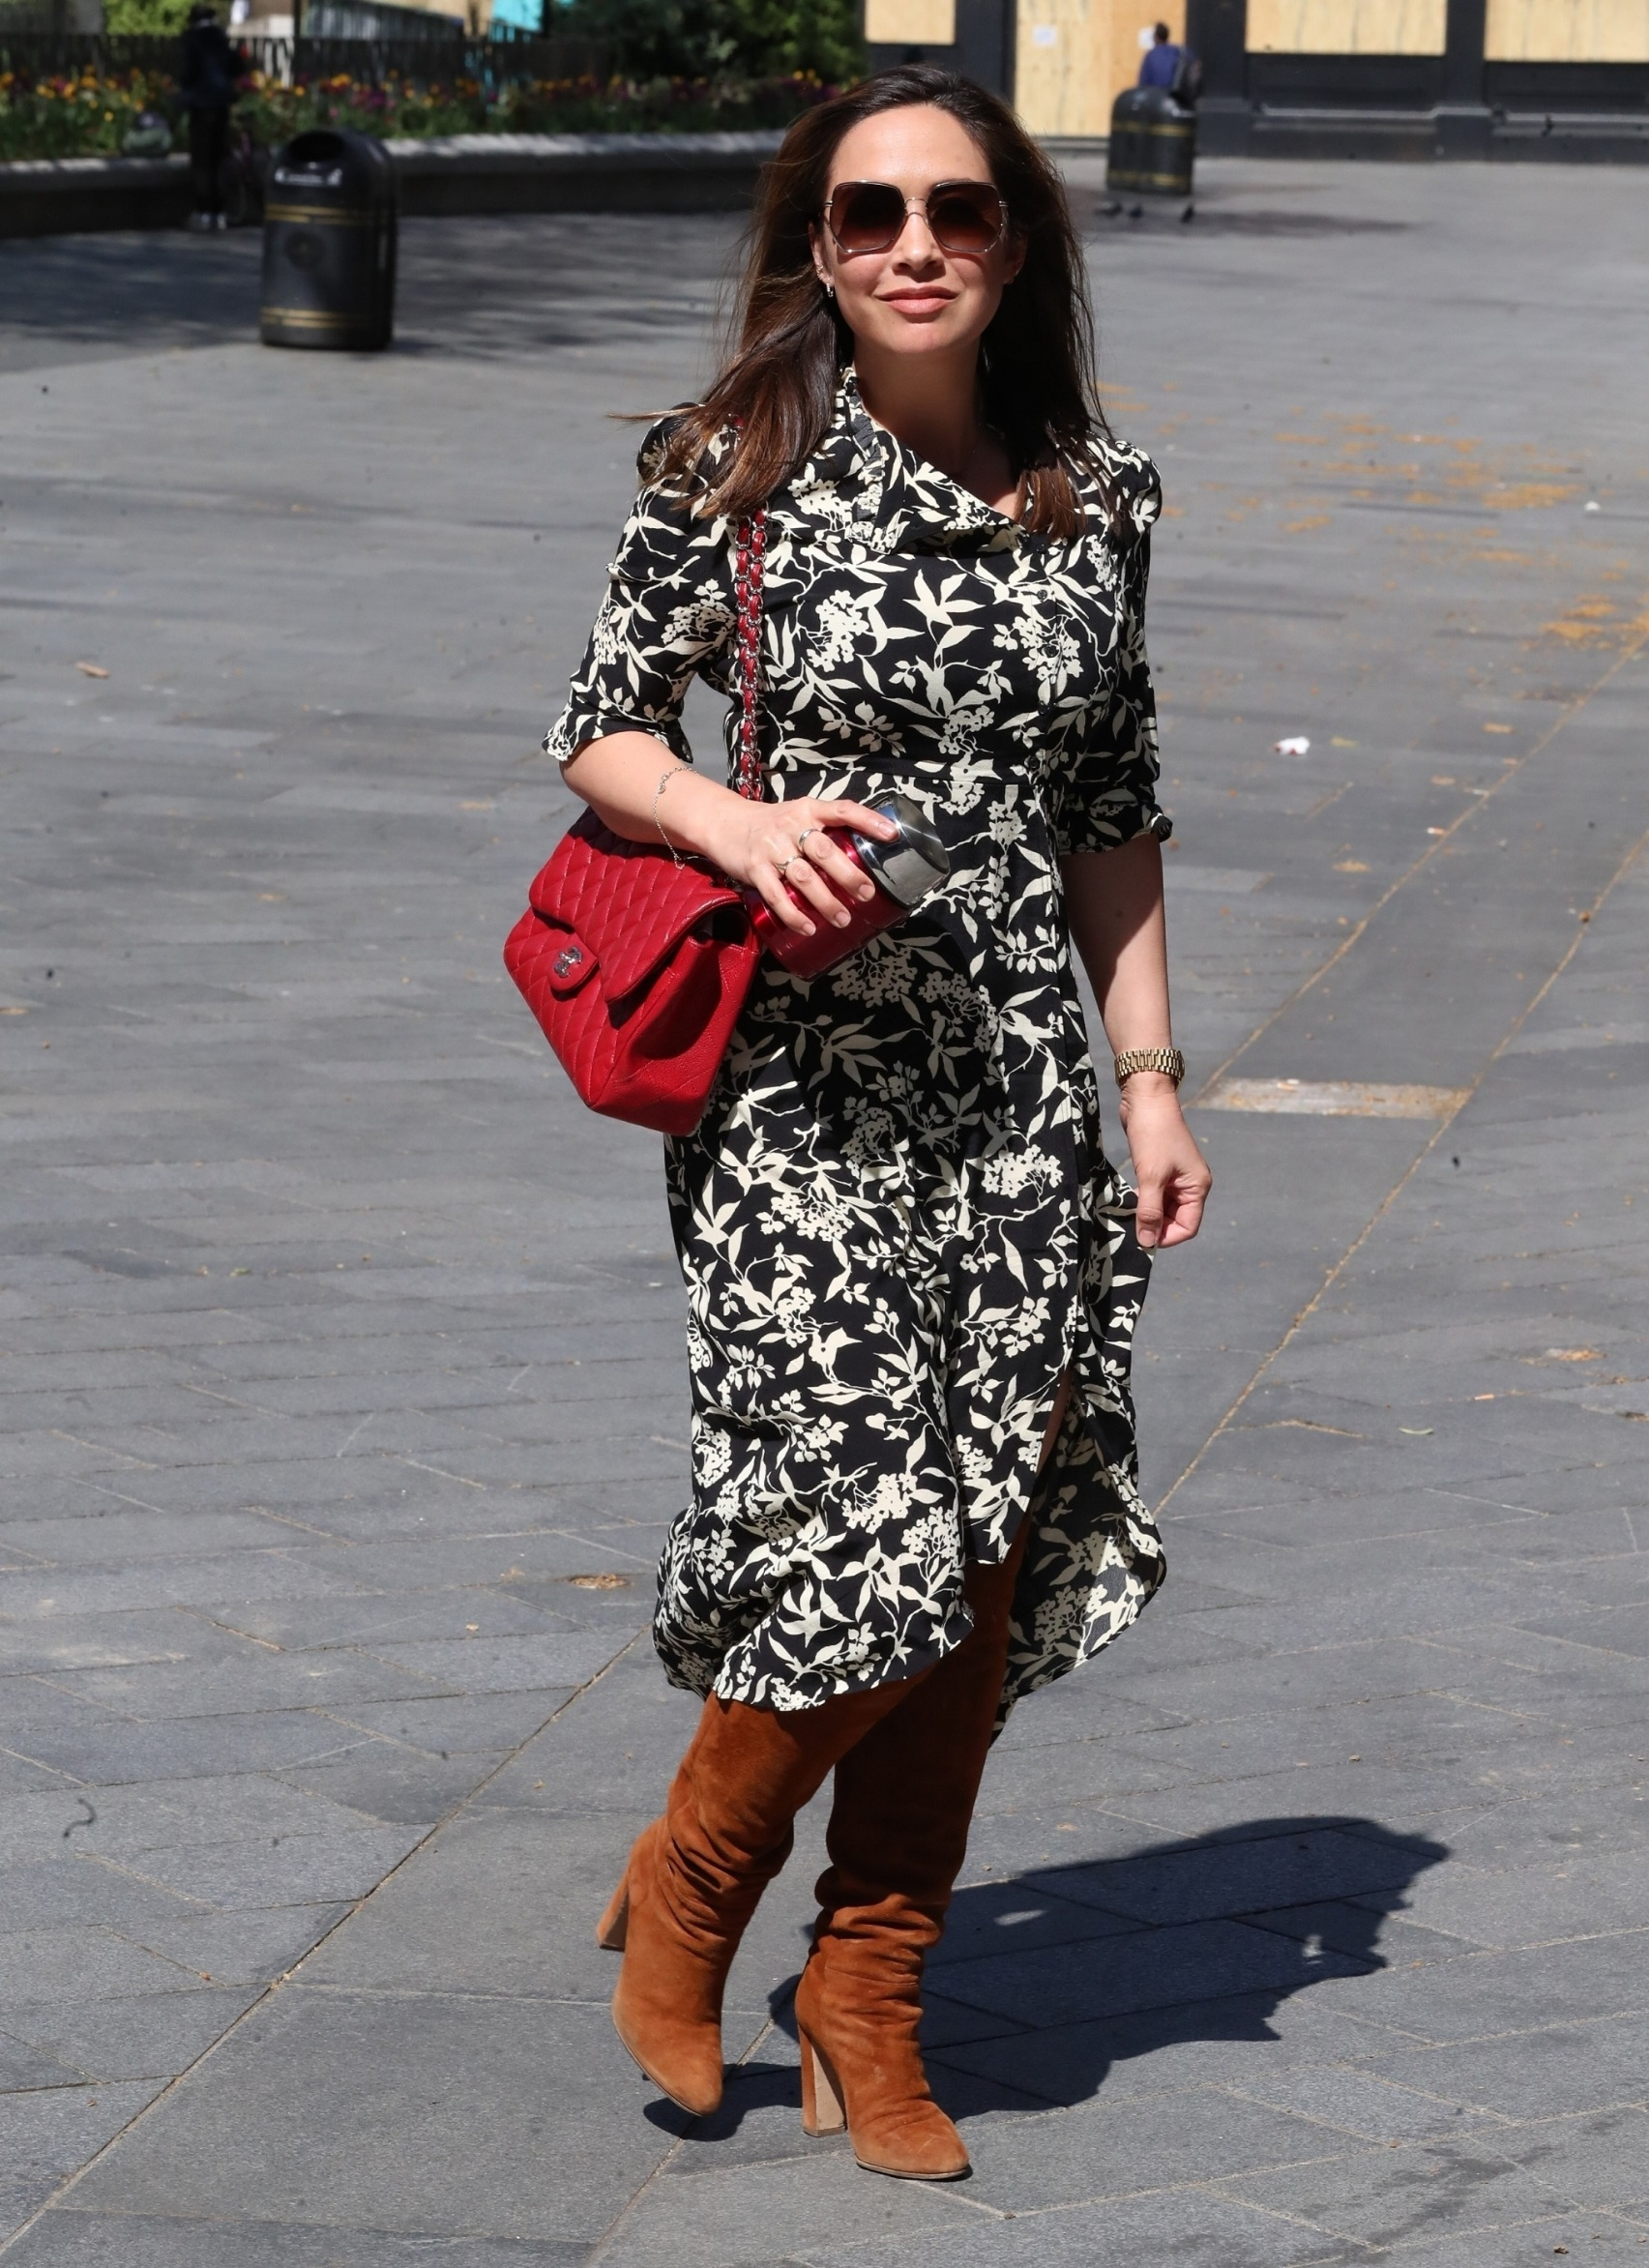 London, UNITED KINGDOM  - Radio Presenter and singer Myleene Klass look summers in a floral dress as she's pictured leaving at Smooth Radio in London.  *UK Clients - Pictures Containing Children Please Pixelate Face Prior To Publication*, Image: 514357235, License: Rights-managed, Restrictions: , Model Release: no, Credit line: BACKGRID / Backgrid UK / Profimedia